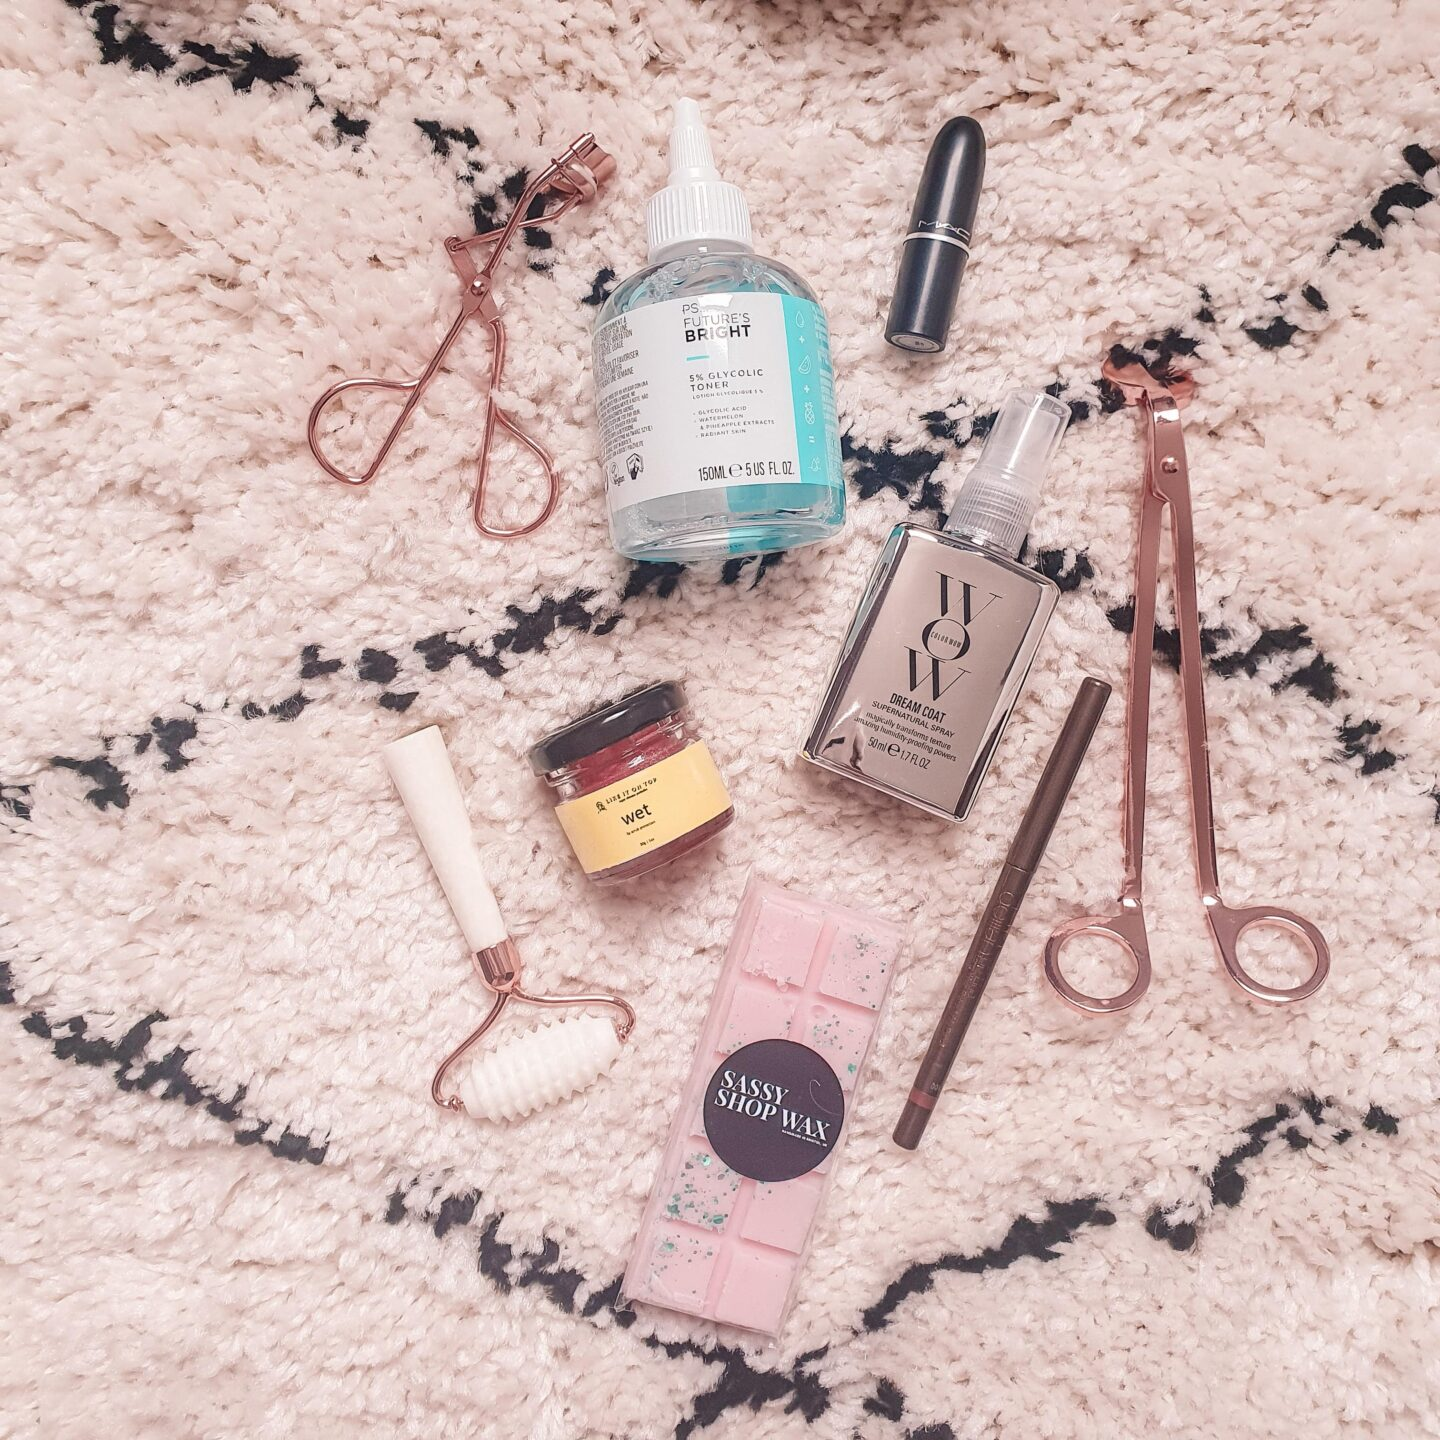 Latest in Beauty The Beauty Crush February Edit